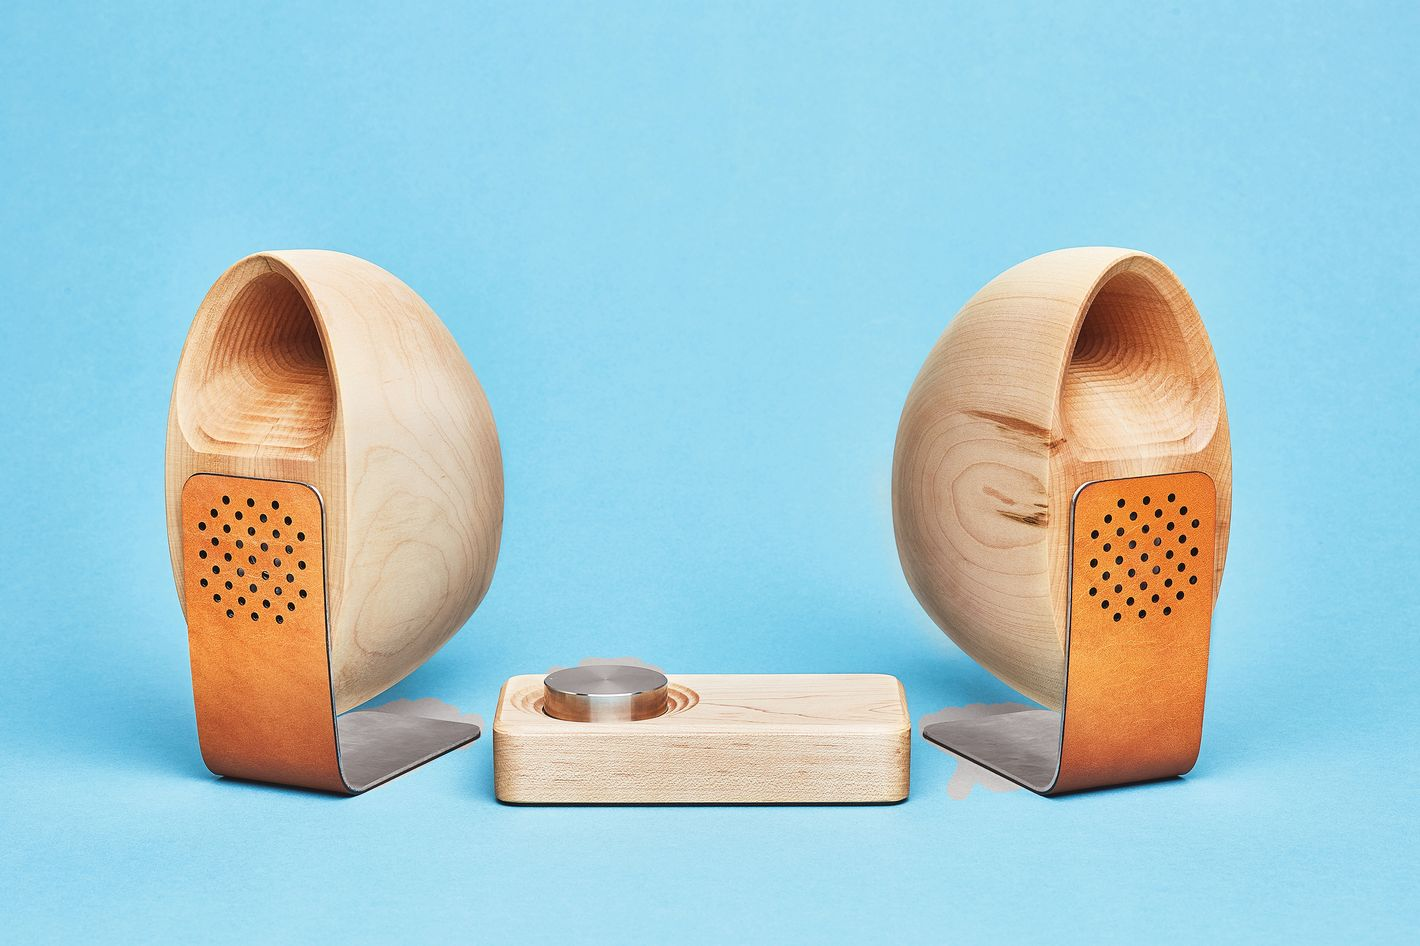 Maple Speakers & Amp